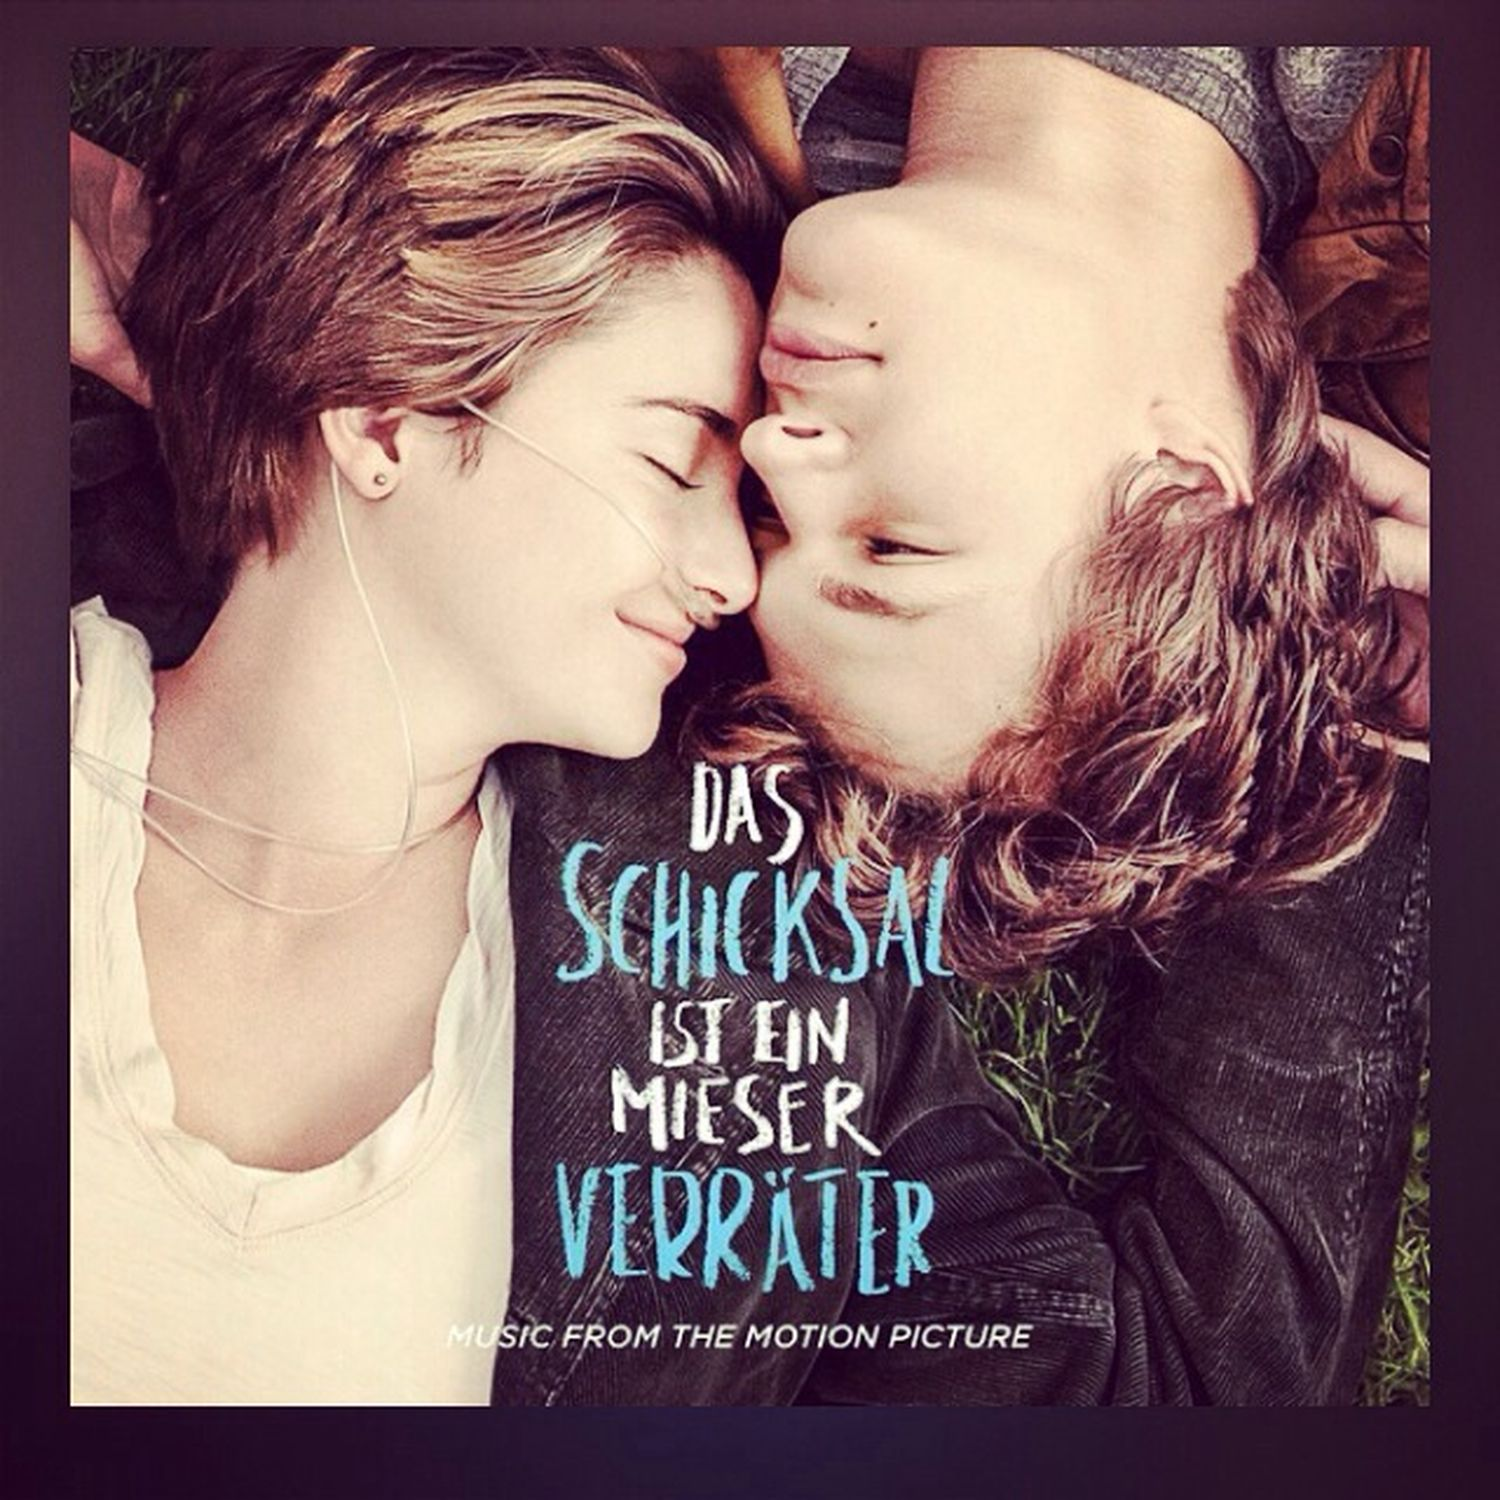 Love this soundtrack ❤️ TFioS